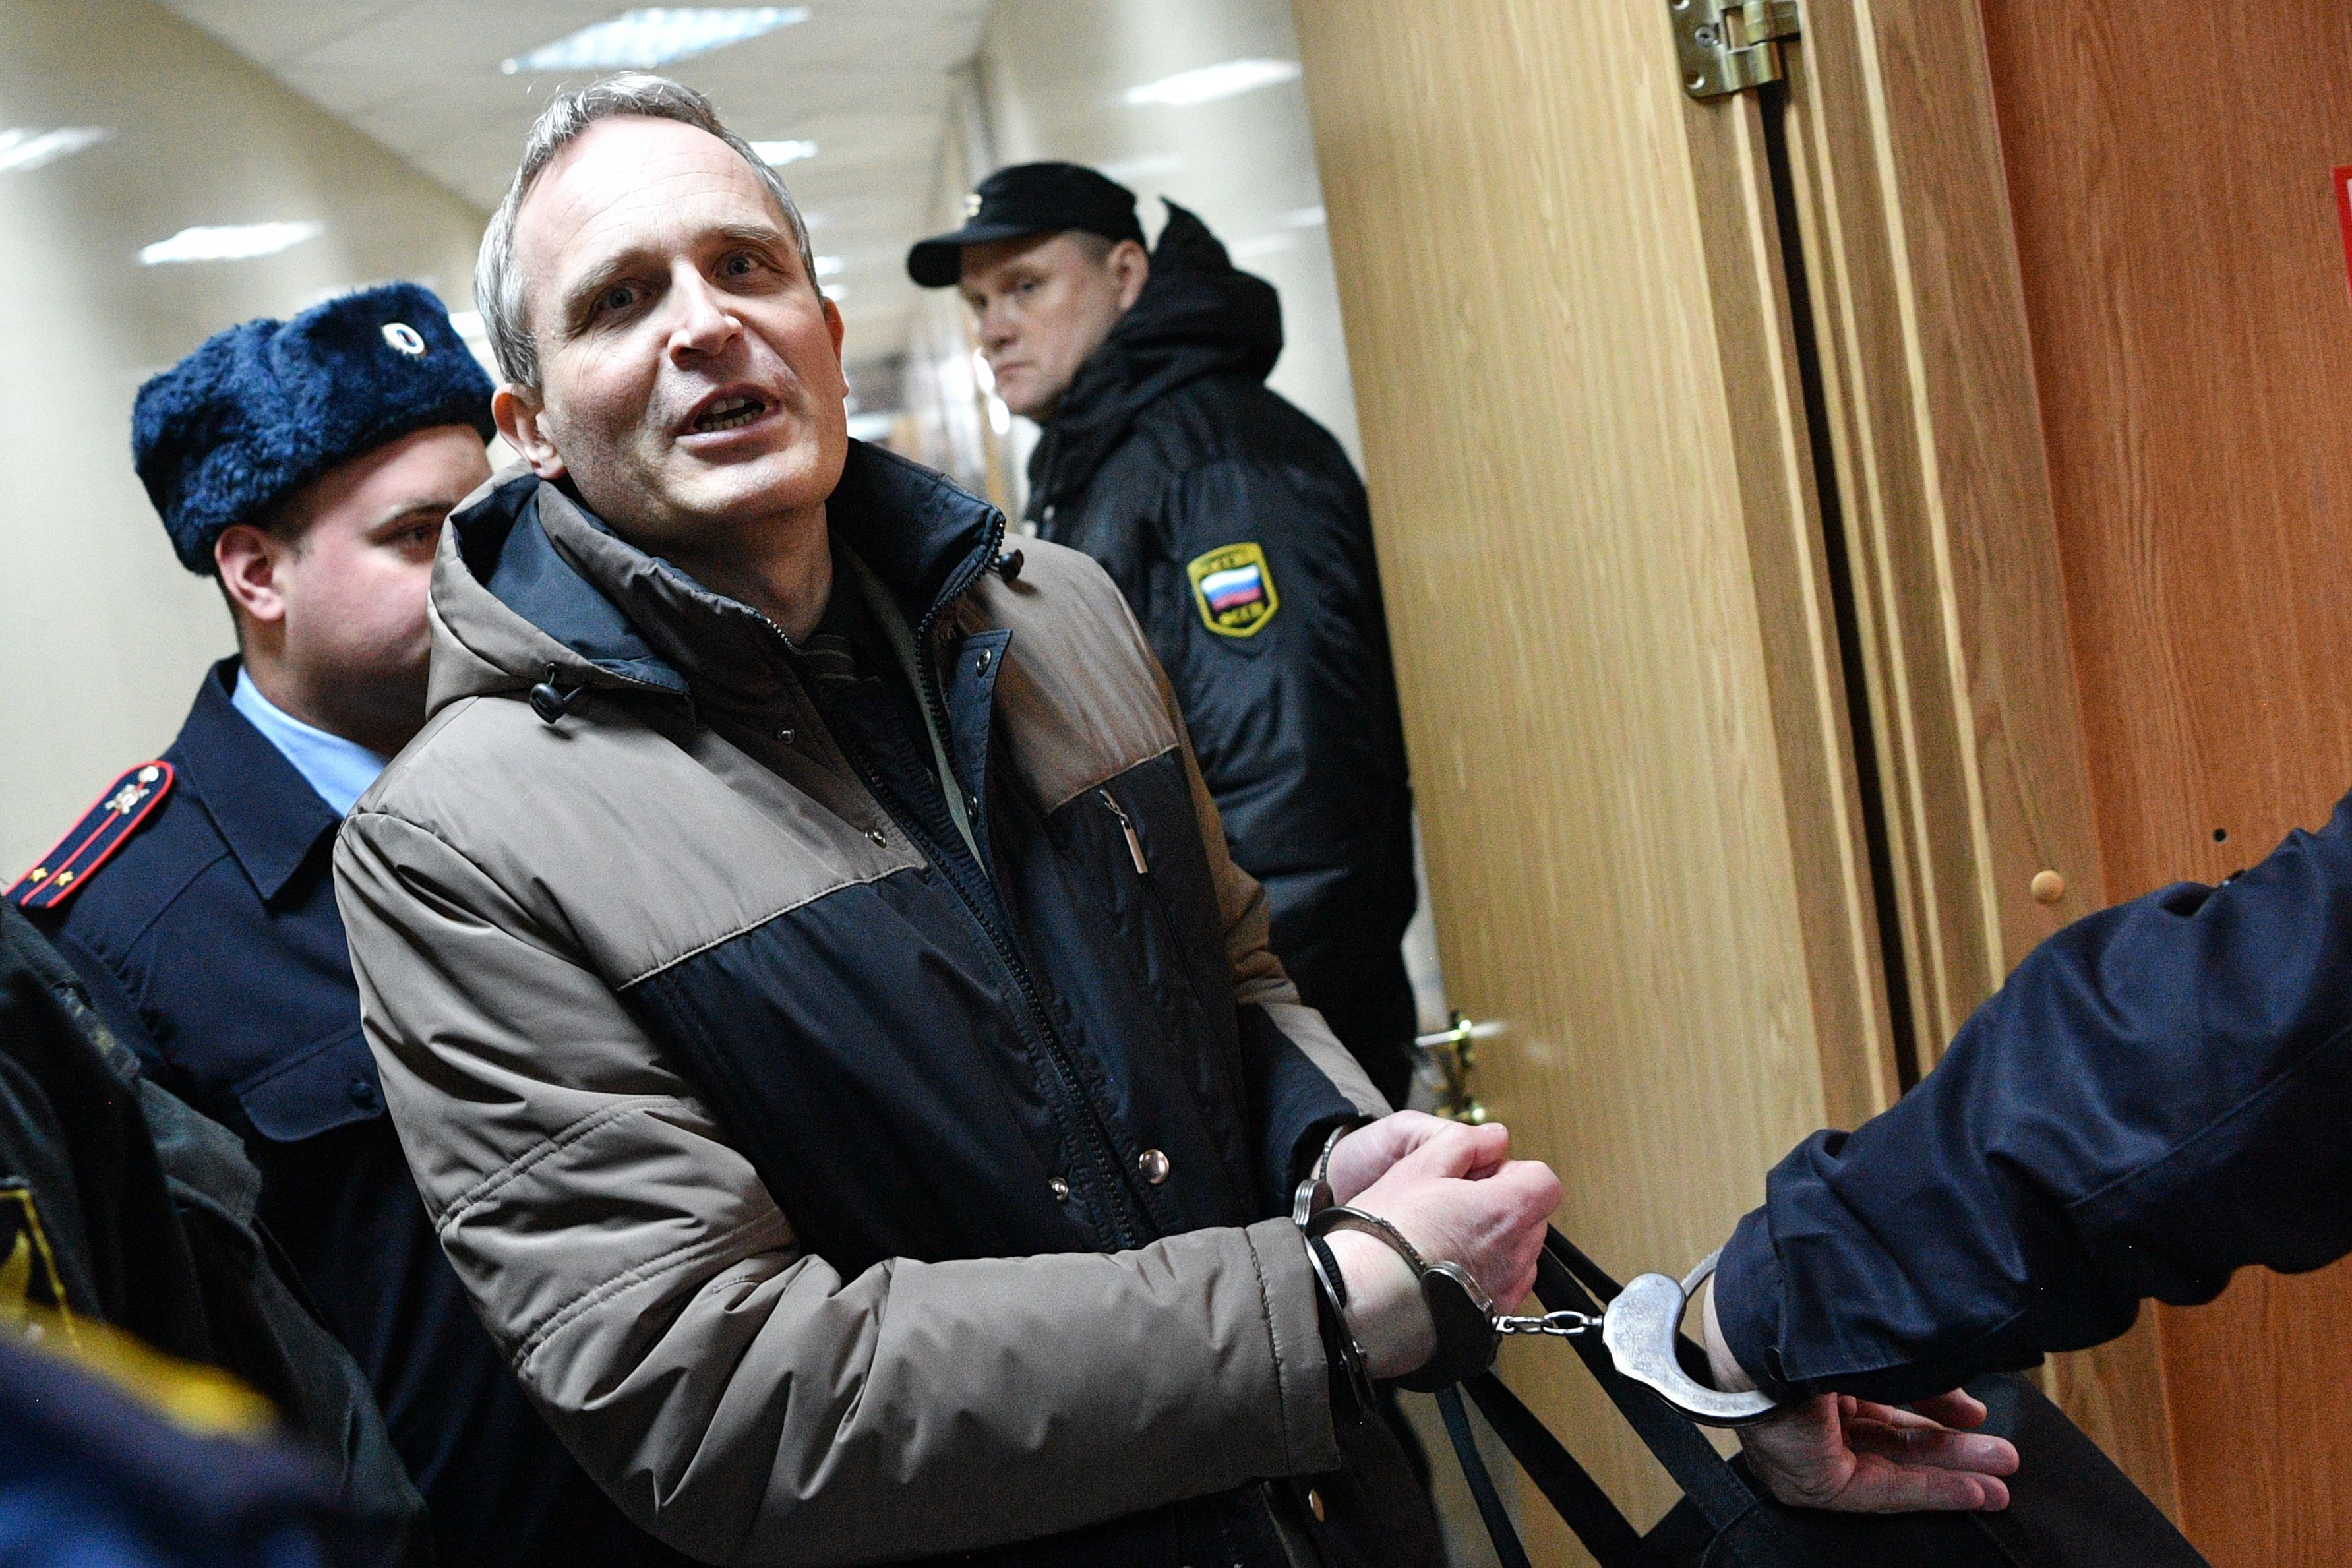 Dennis Christensen, a Danish Jehovah's Witness accused of extremism, is escorted into a courtroom to hear his verdict in the town of Oryol on February 6, 2019. (Photo by Mladen ANTONOV / AFP) (Photo credit should read MLADEN ANTONOV/AFP via Getty Images)